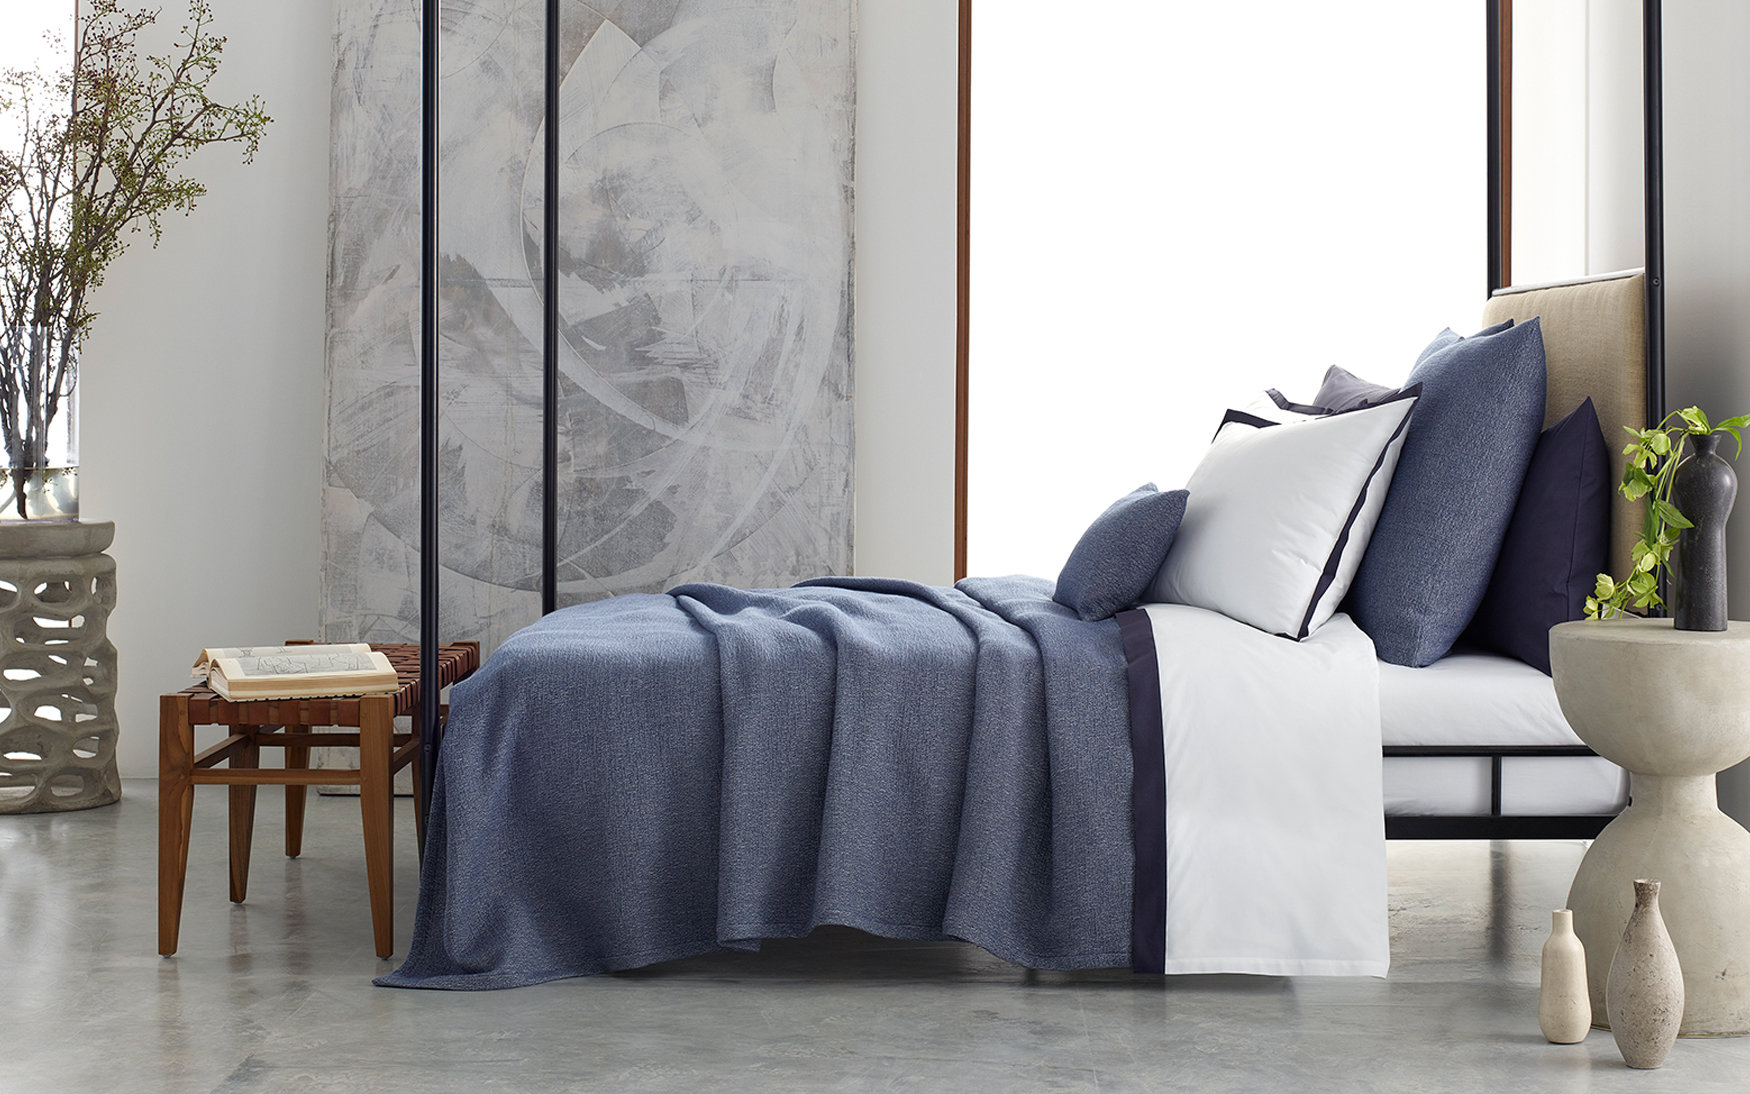 Pacific blue coverlet bedding